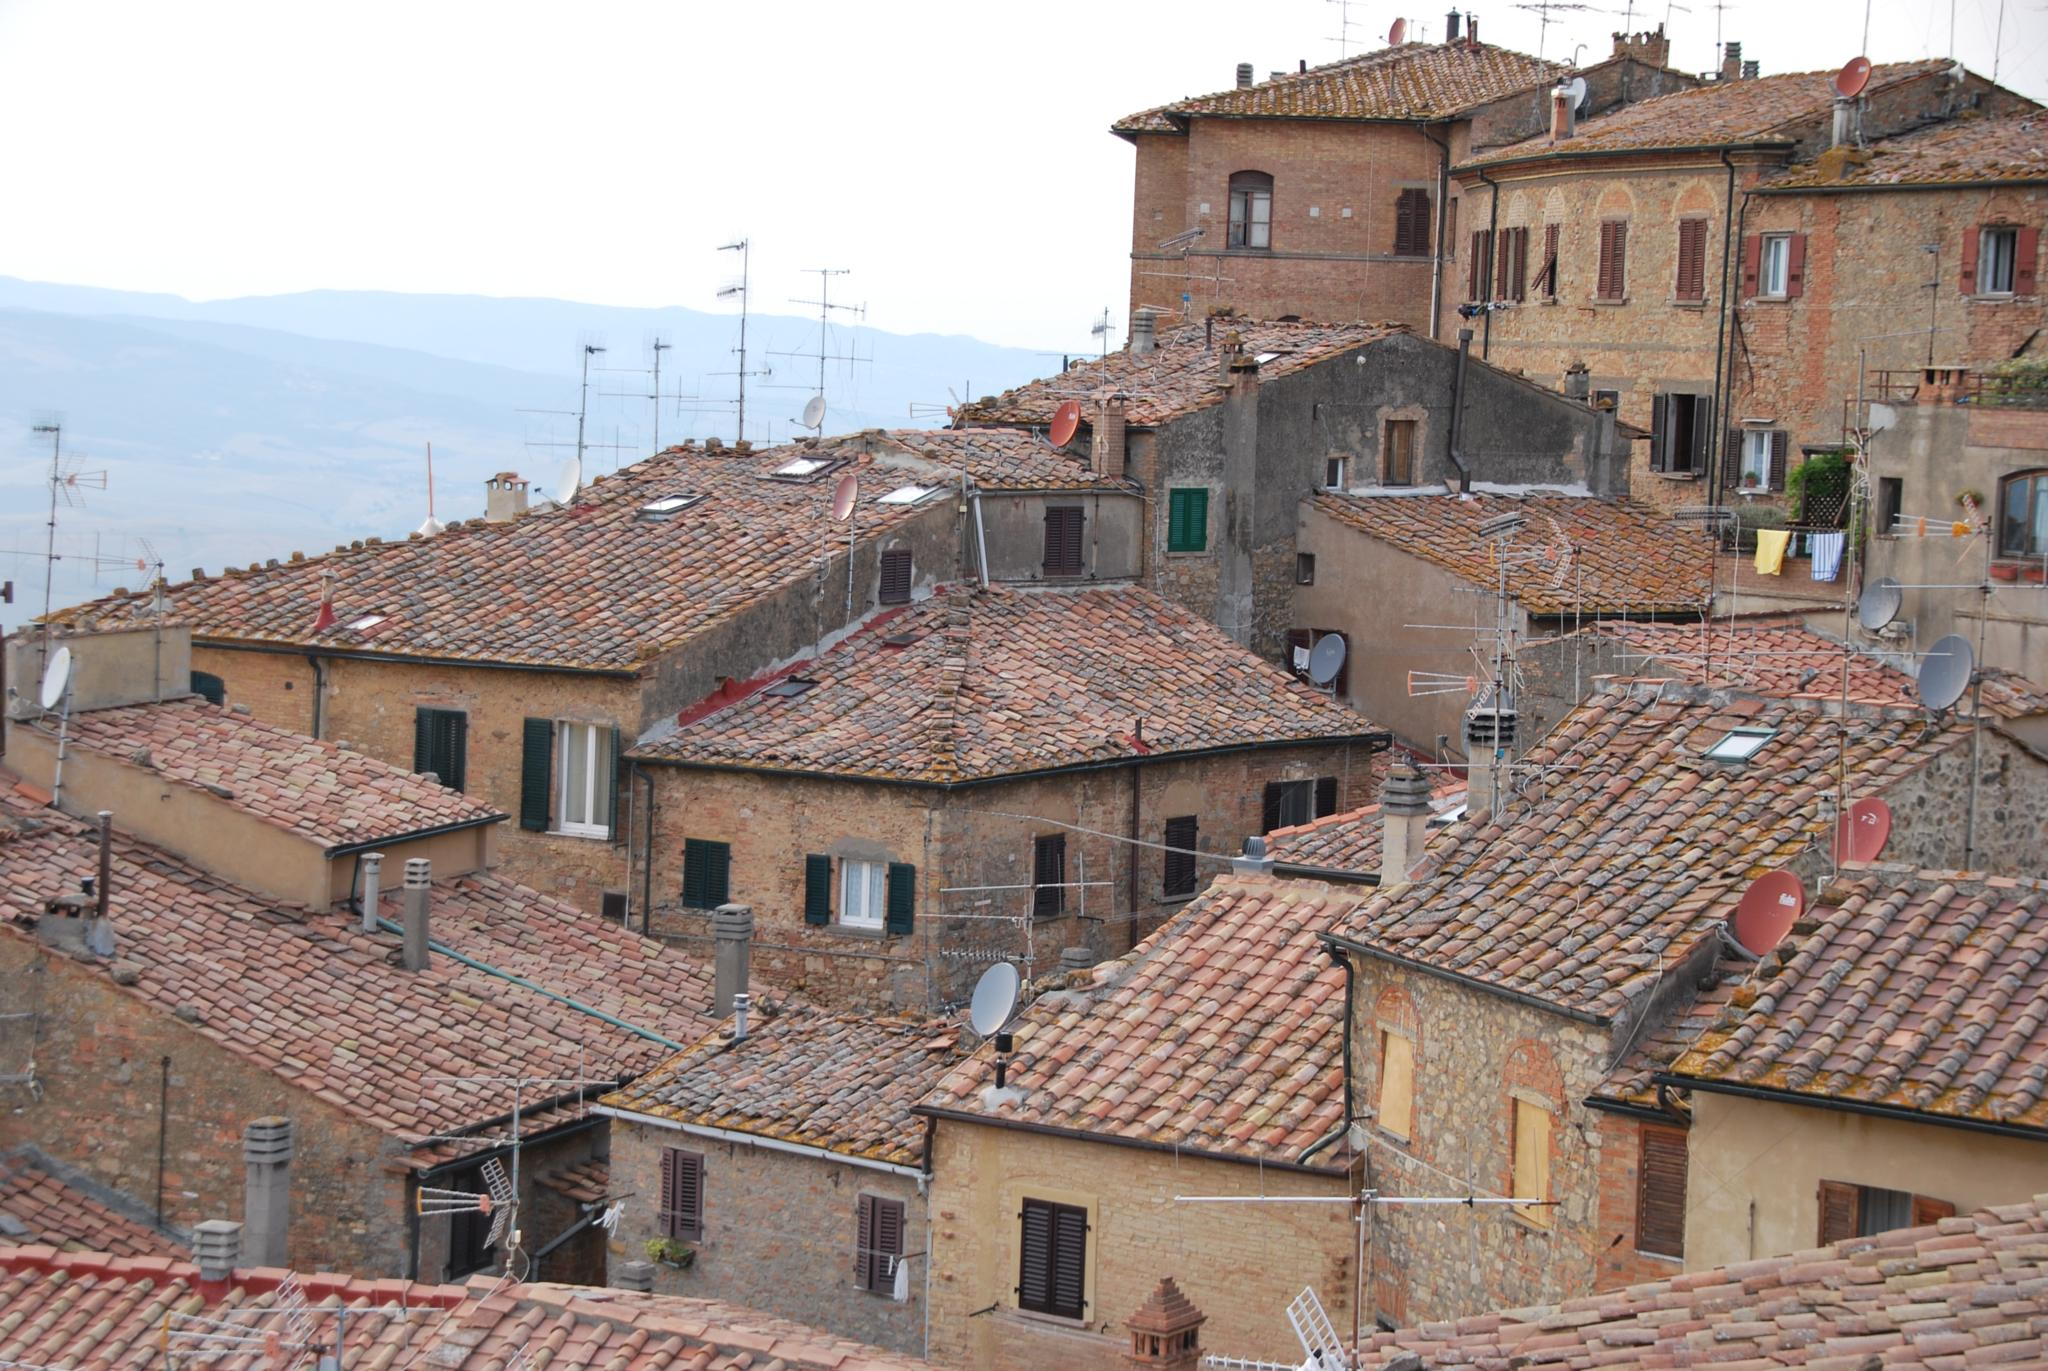 Italy roof tops by fasteddie23